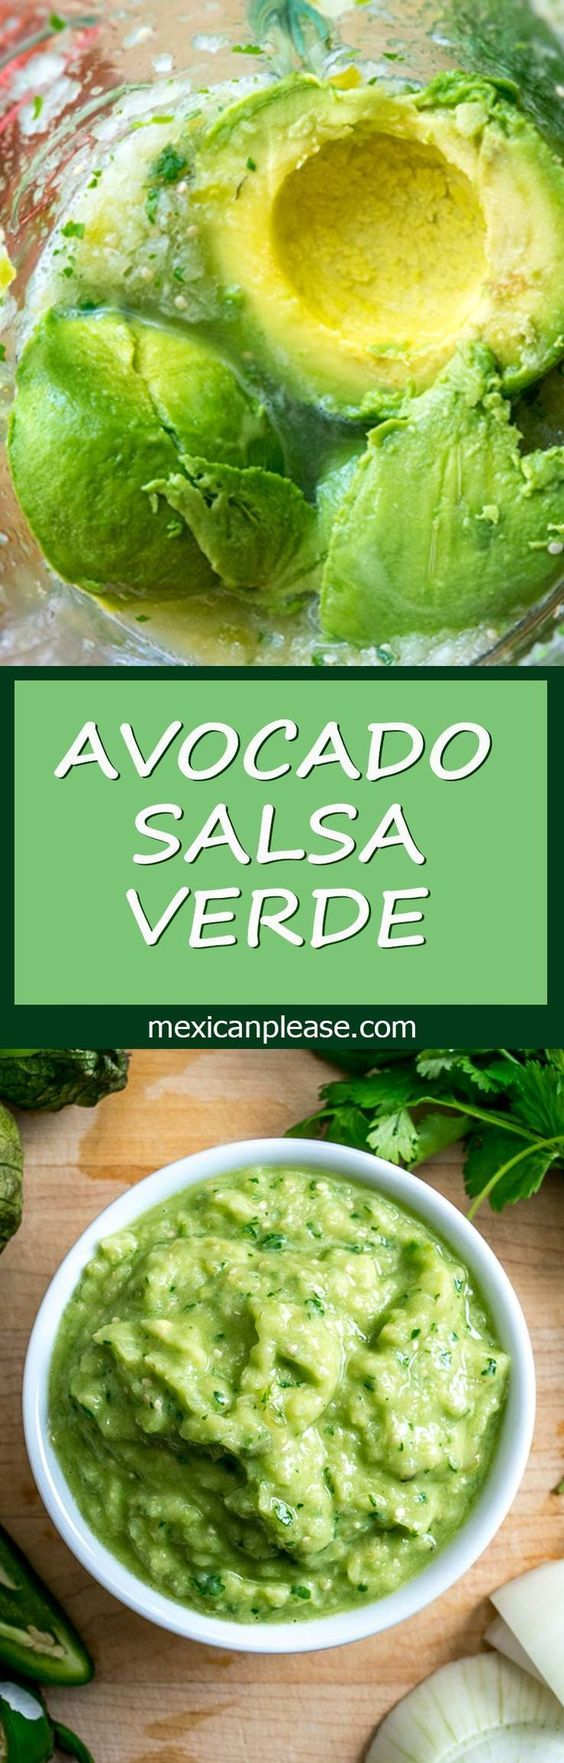 best 25+ mexican cuisine ideas only on pinterest   what is a